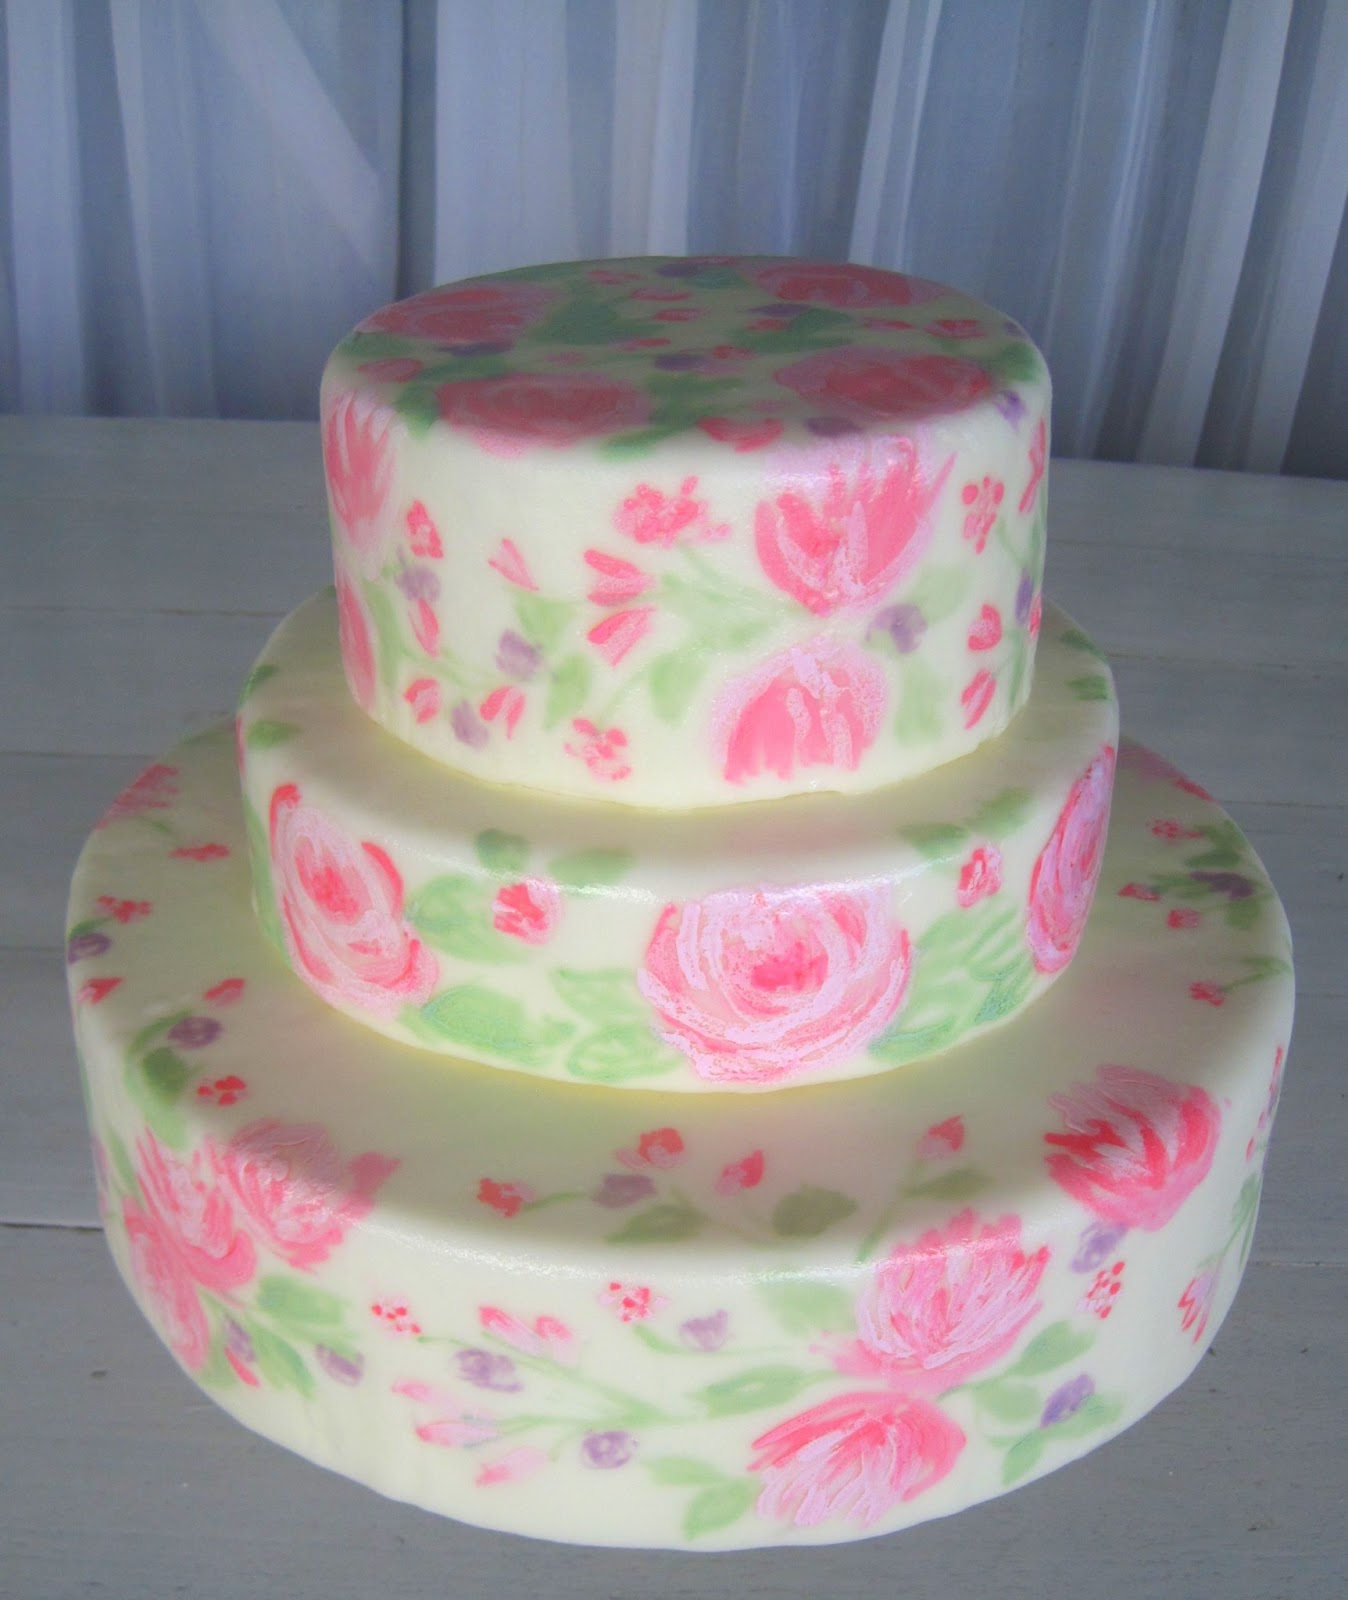 Pictures of Hand Painted Fondant Wedding Cakes